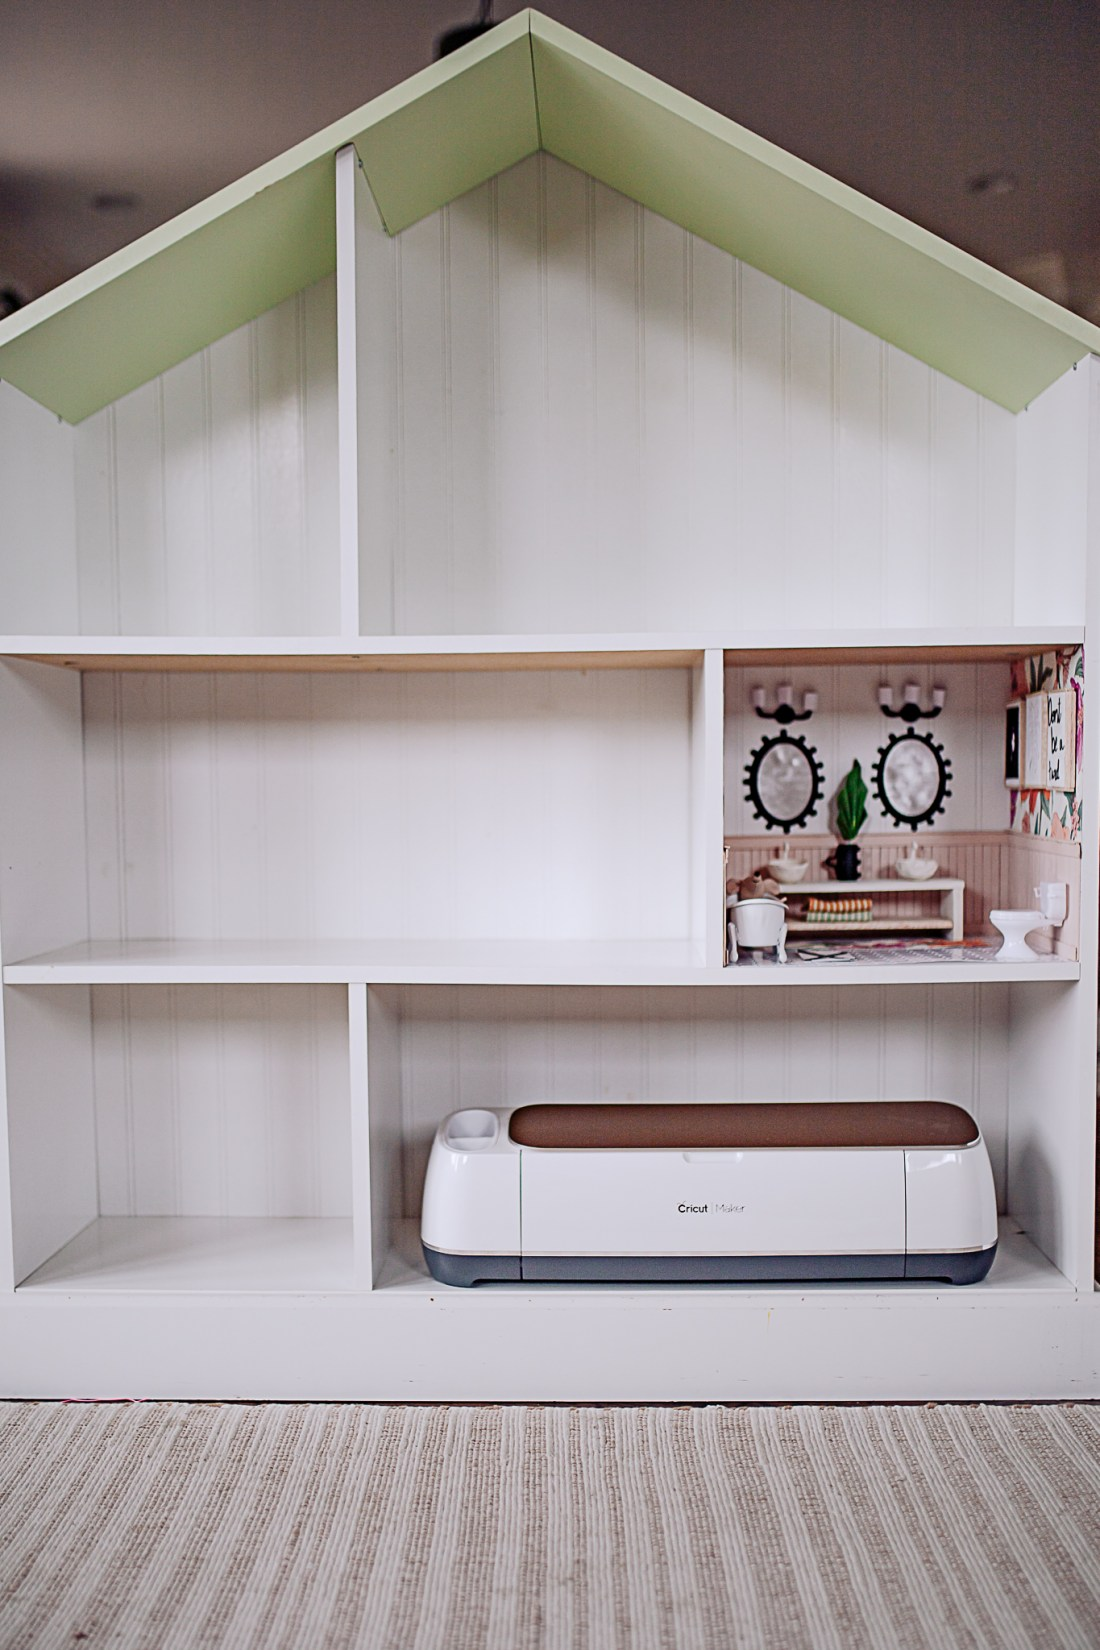 Dollhouse Accessories by popular Nashville life and style blog, Modern Day Moguls: image of a white dollhouse and a Cricut machine.